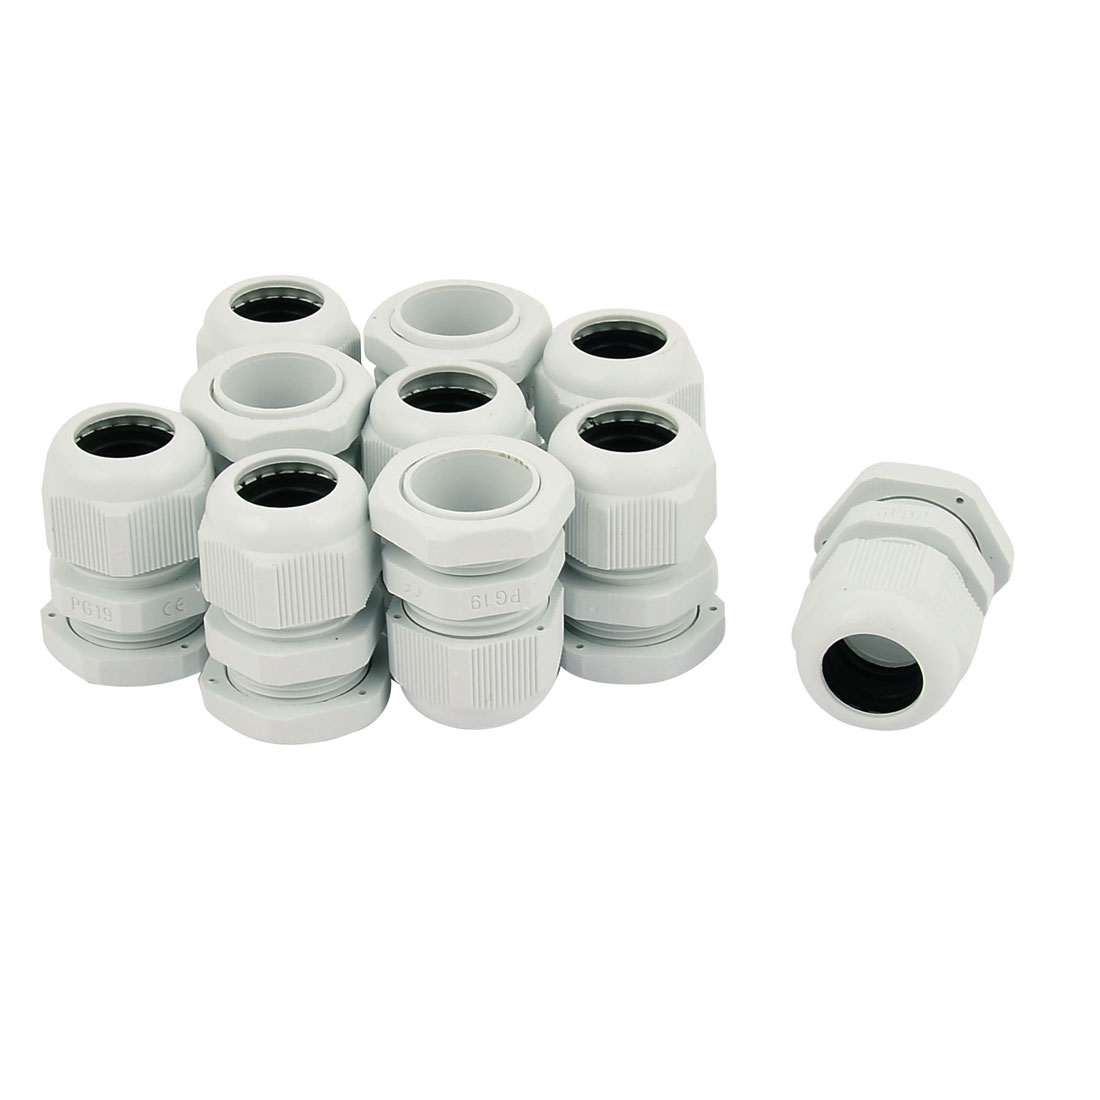 PG-19 White Plastic Waterproof Connectors Cable Glands 10 Pcs